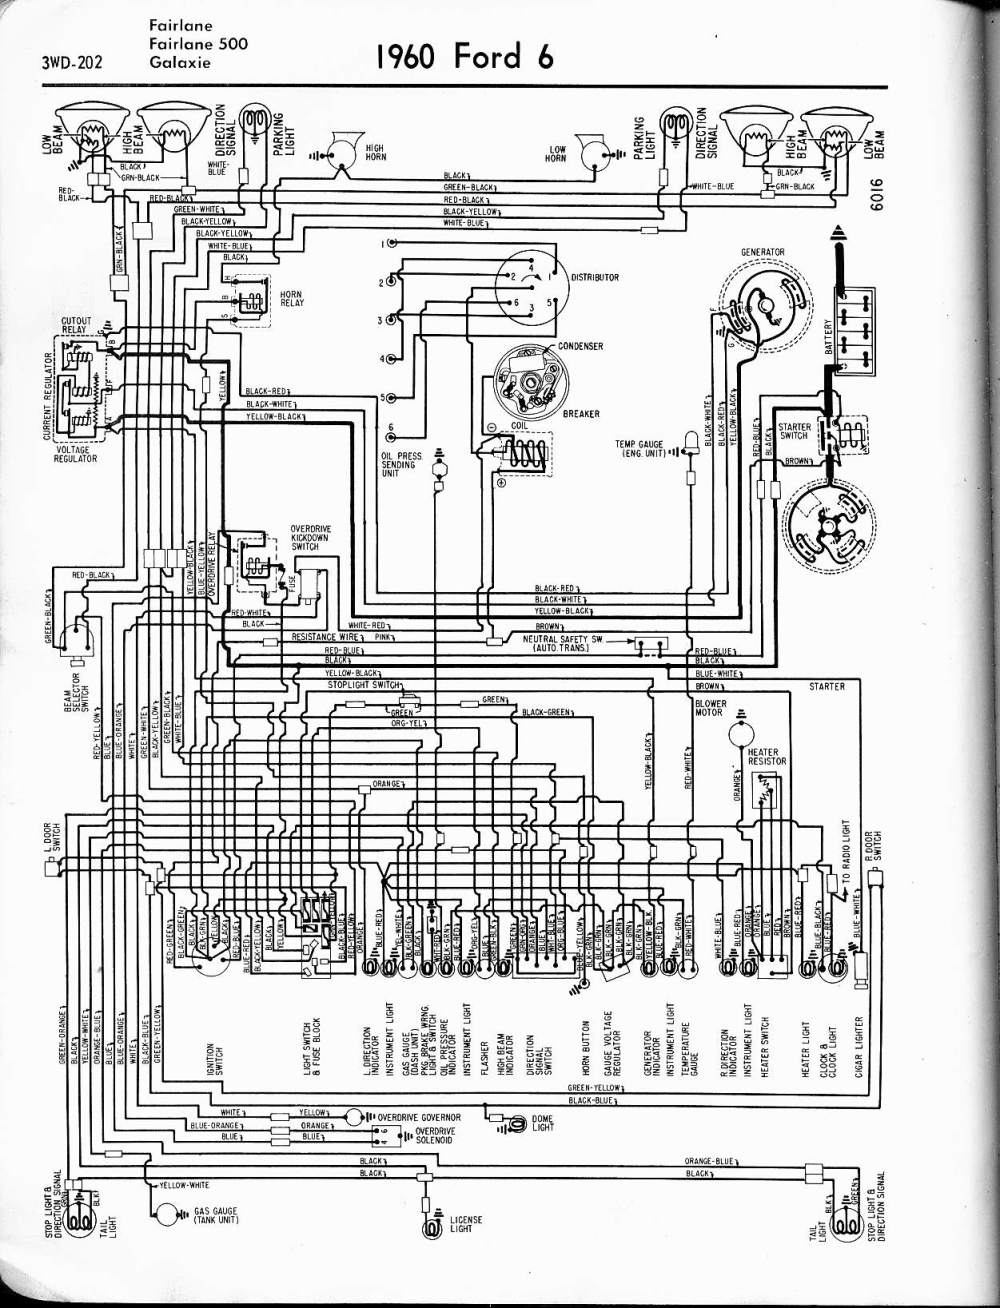 medium resolution of 57 65 ford wiring diagrams 1960 6 cyl fairlane 500 galaxie